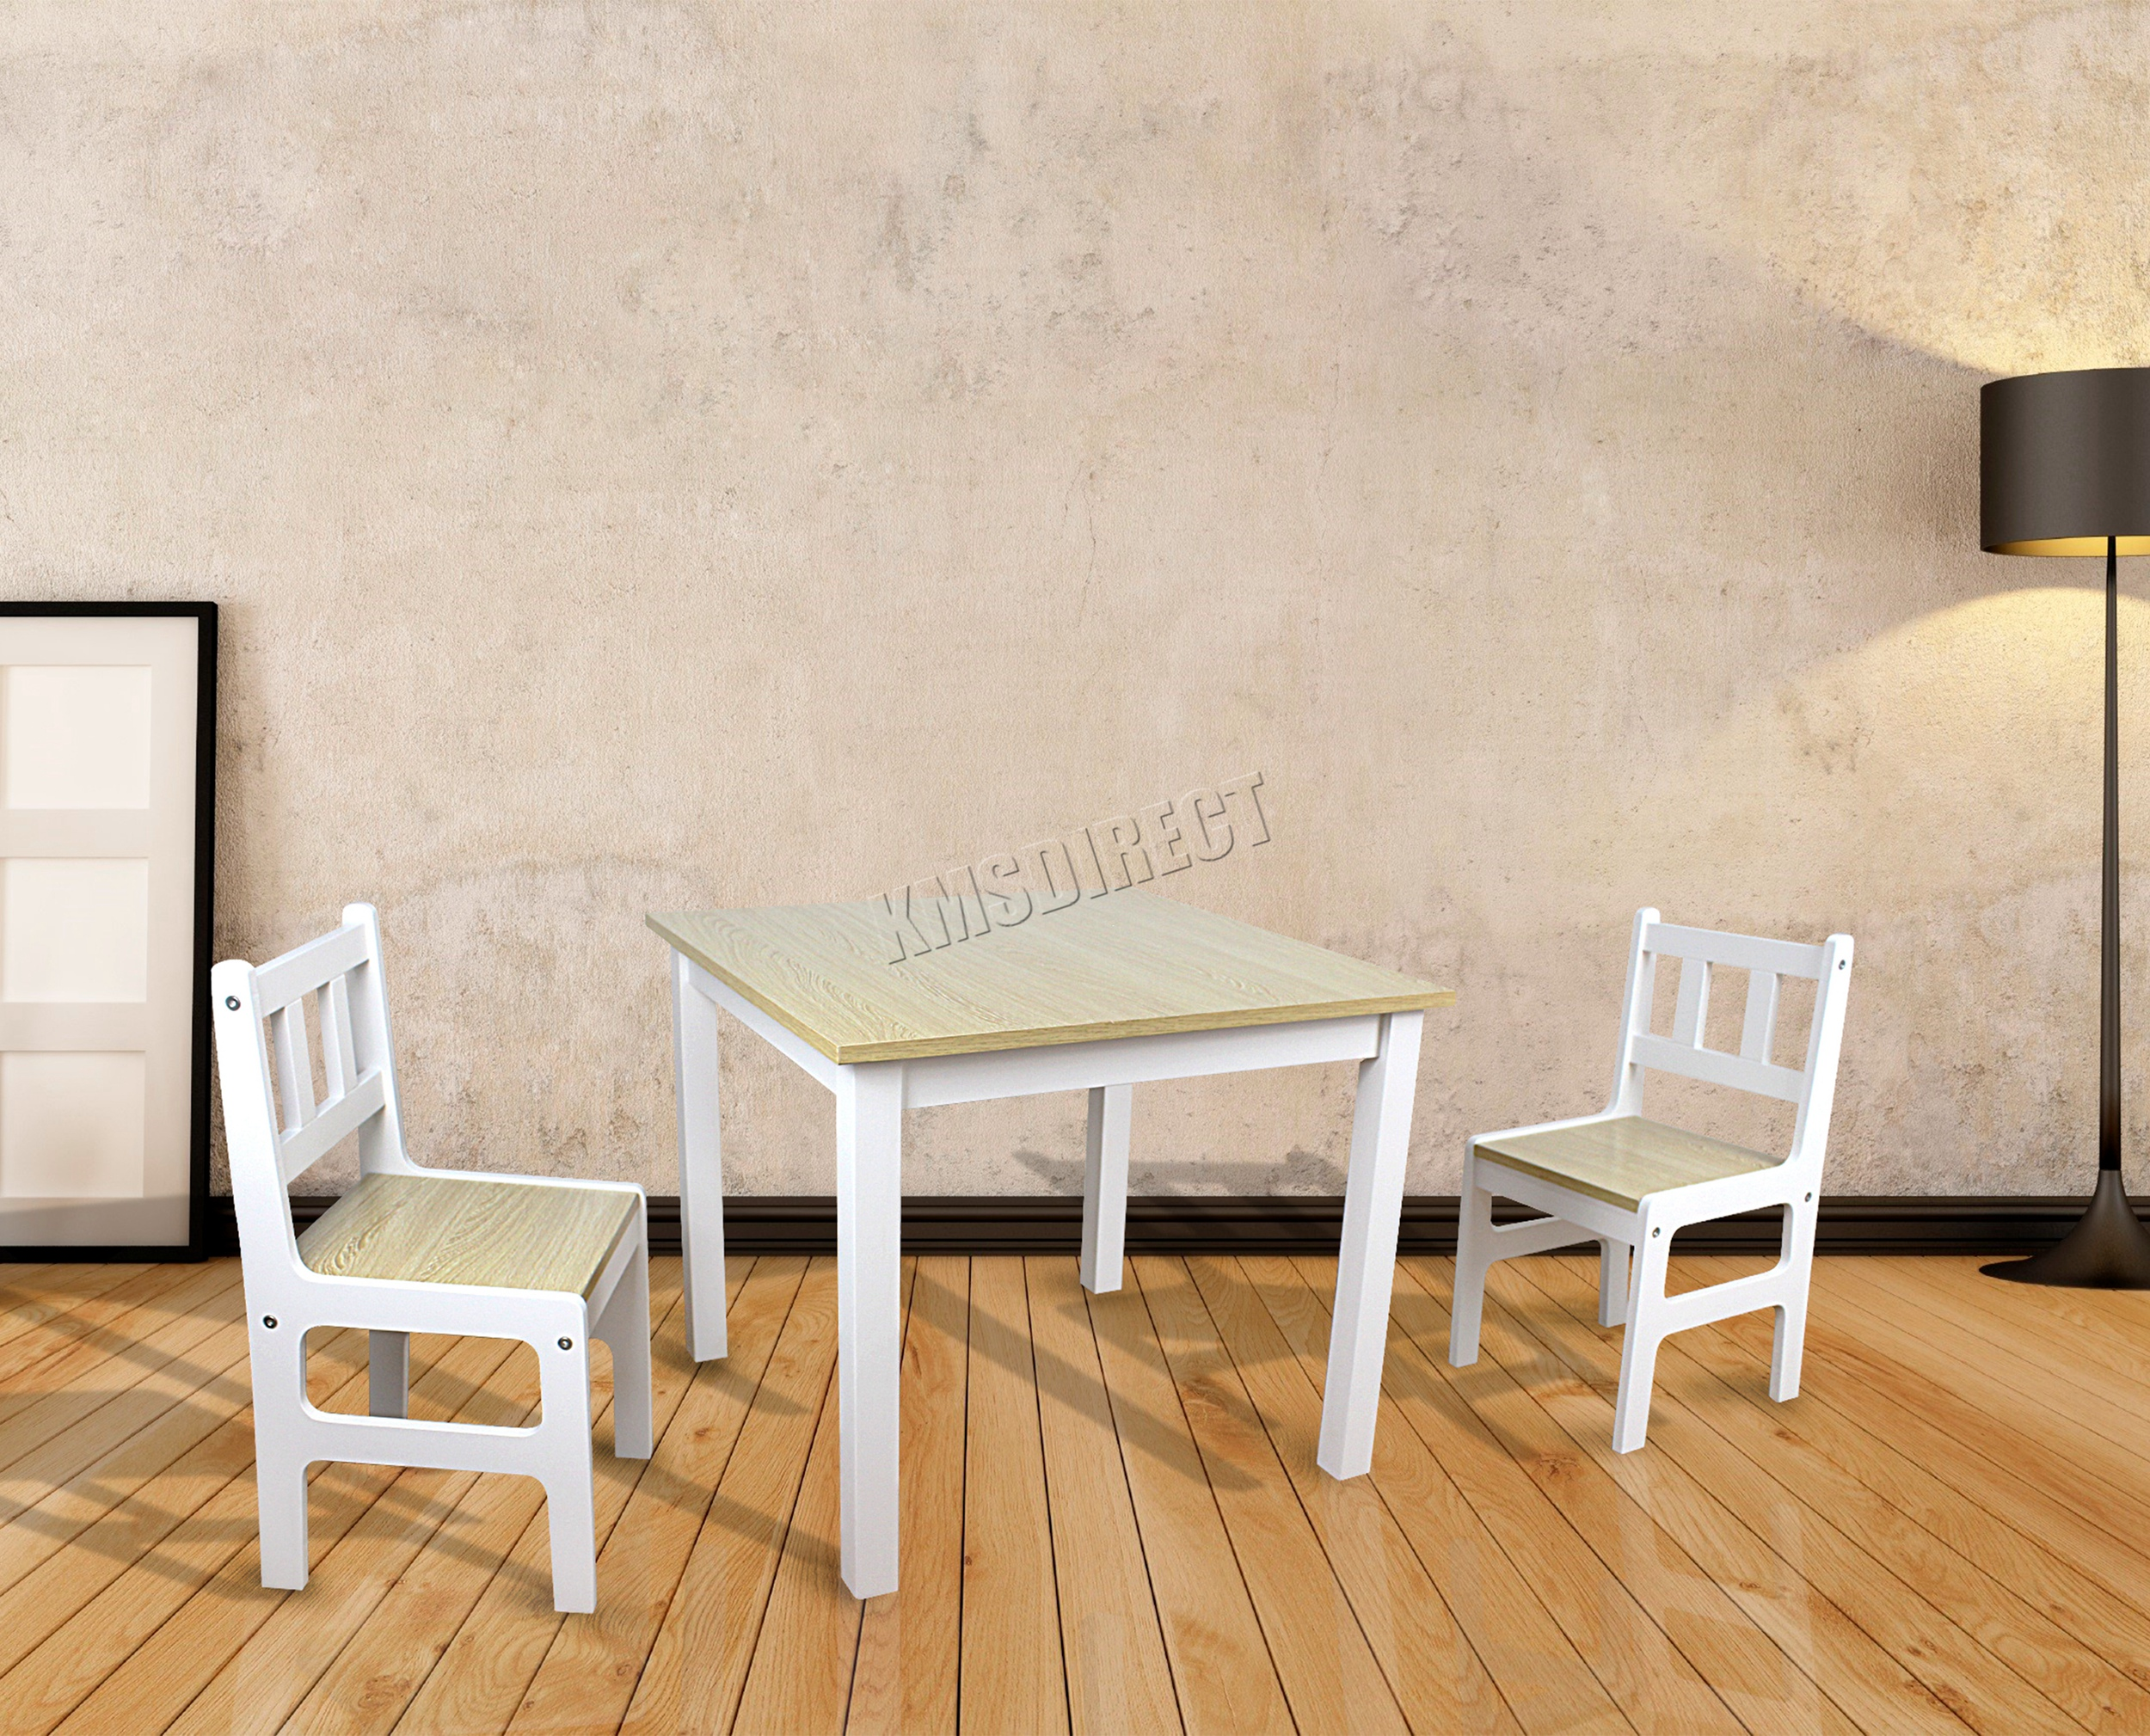 foxhunter kinder tisch mit 2 st hle set toy untersuchung spielzimmer holz kts01 ebay. Black Bedroom Furniture Sets. Home Design Ideas